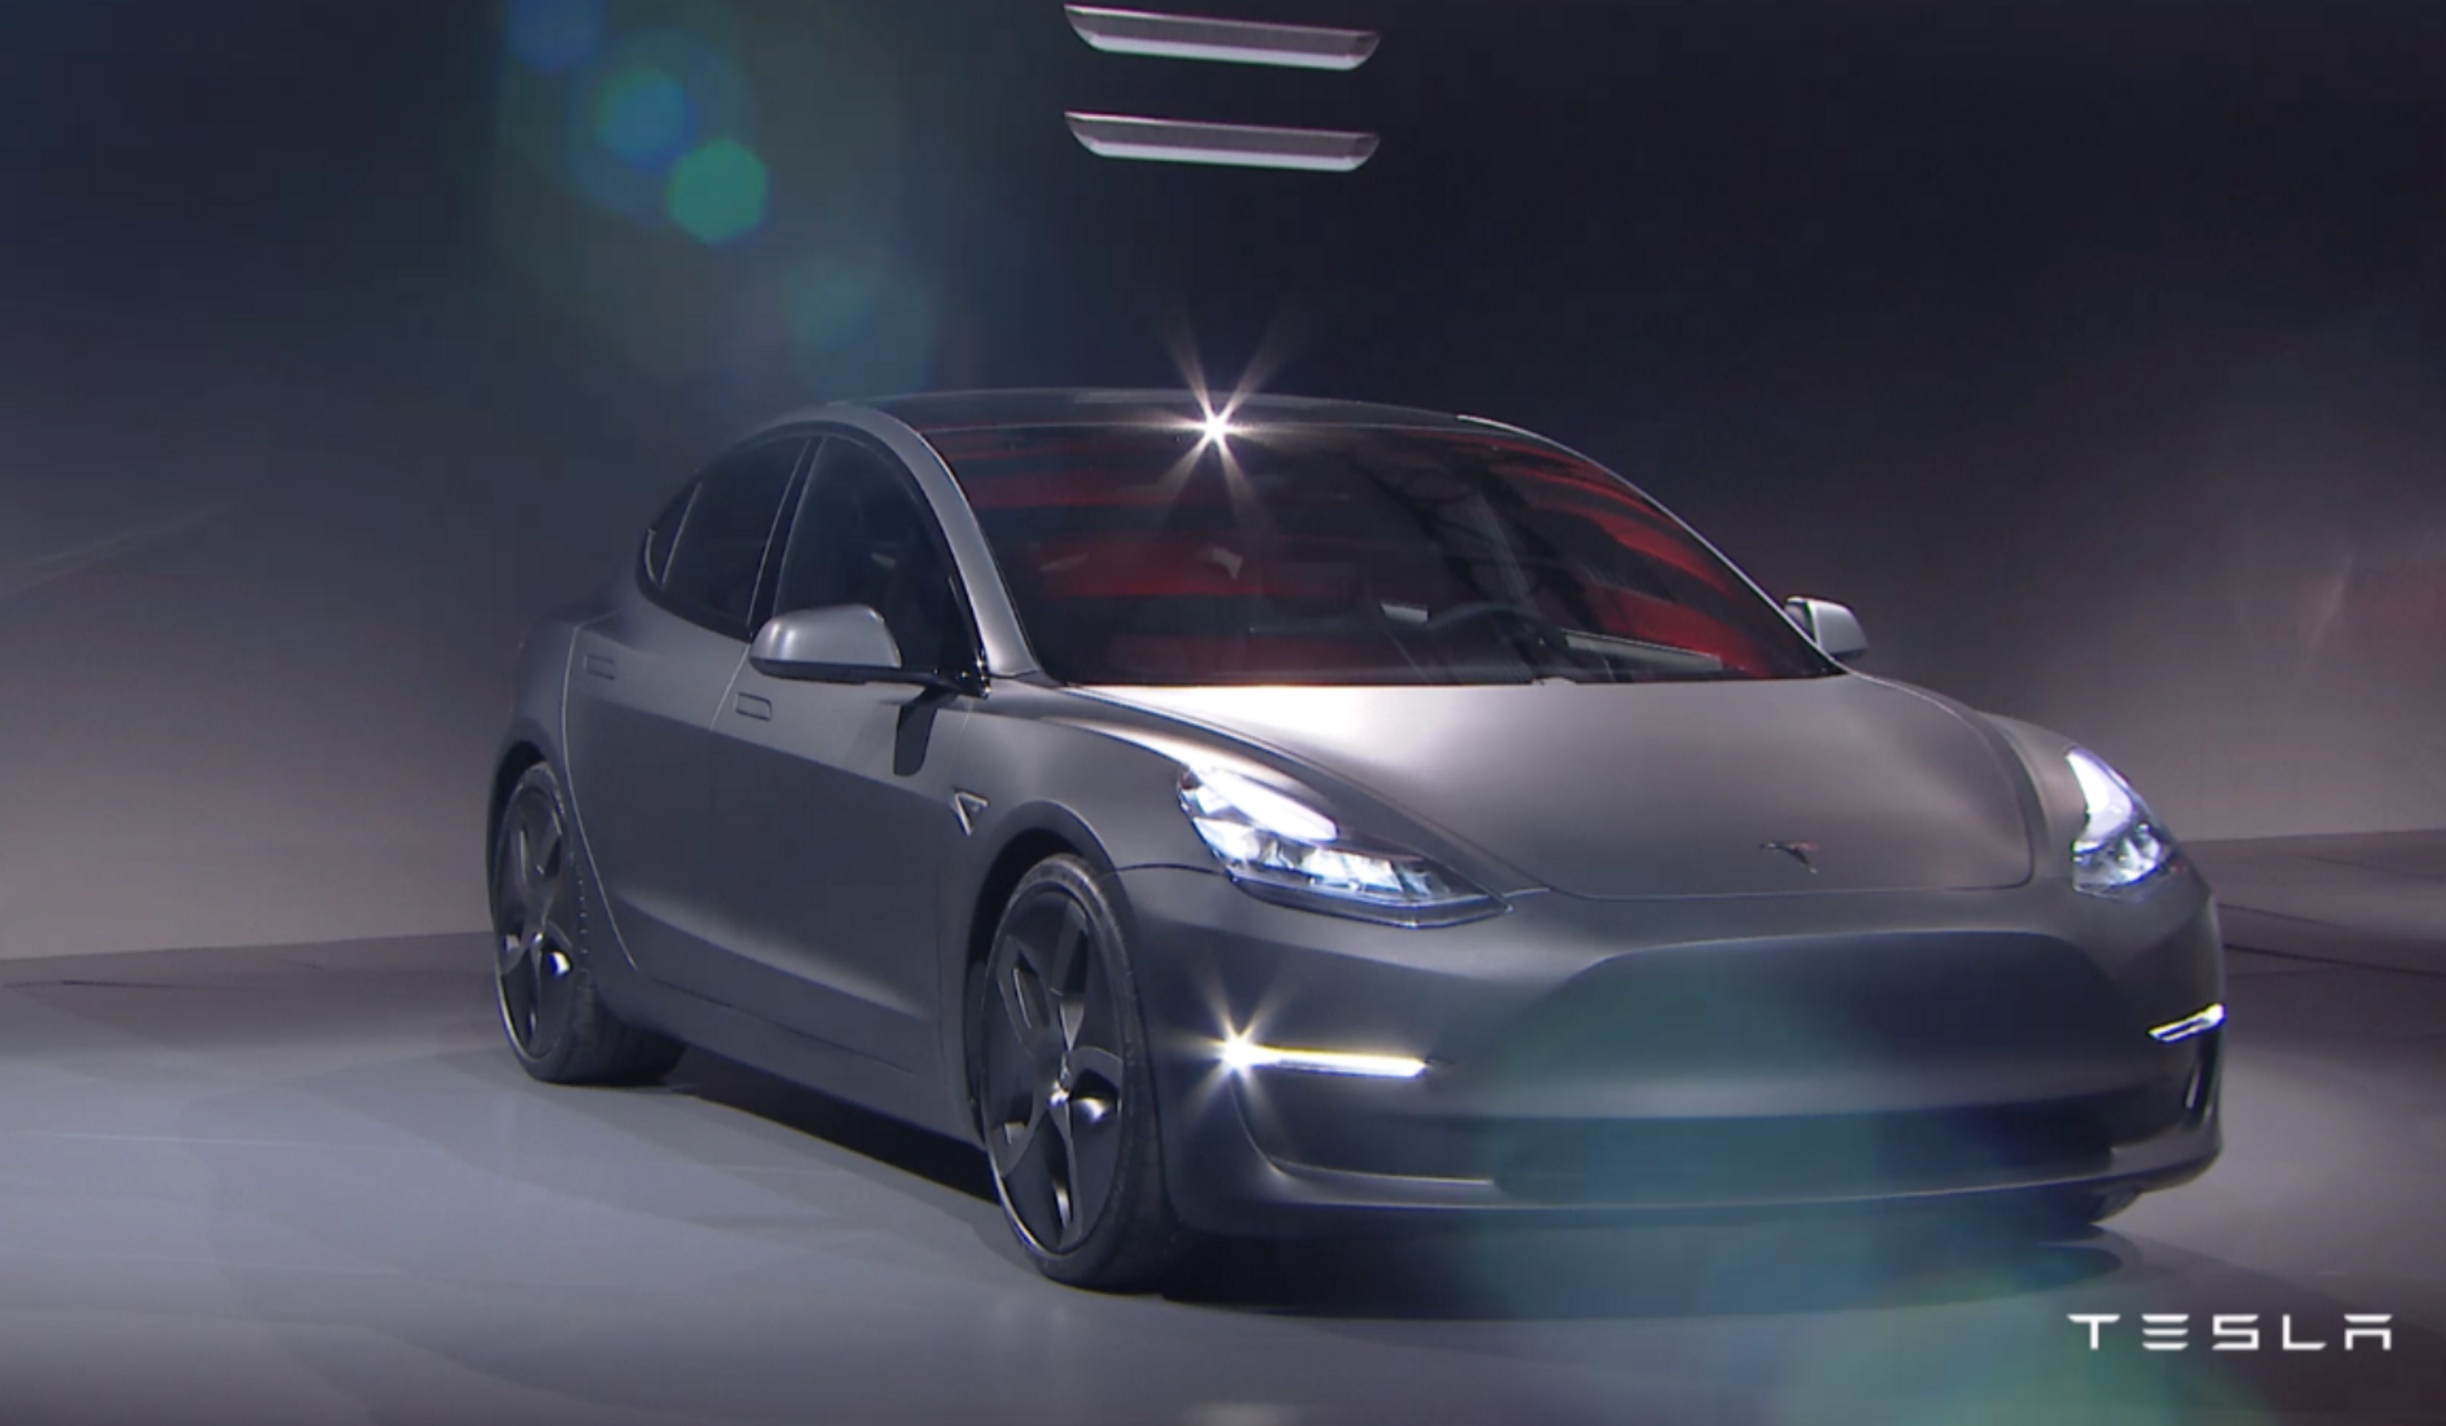 tesla model 3 voici celle qui devrait d mocratiser la voiture lectrique frandroid. Black Bedroom Furniture Sets. Home Design Ideas